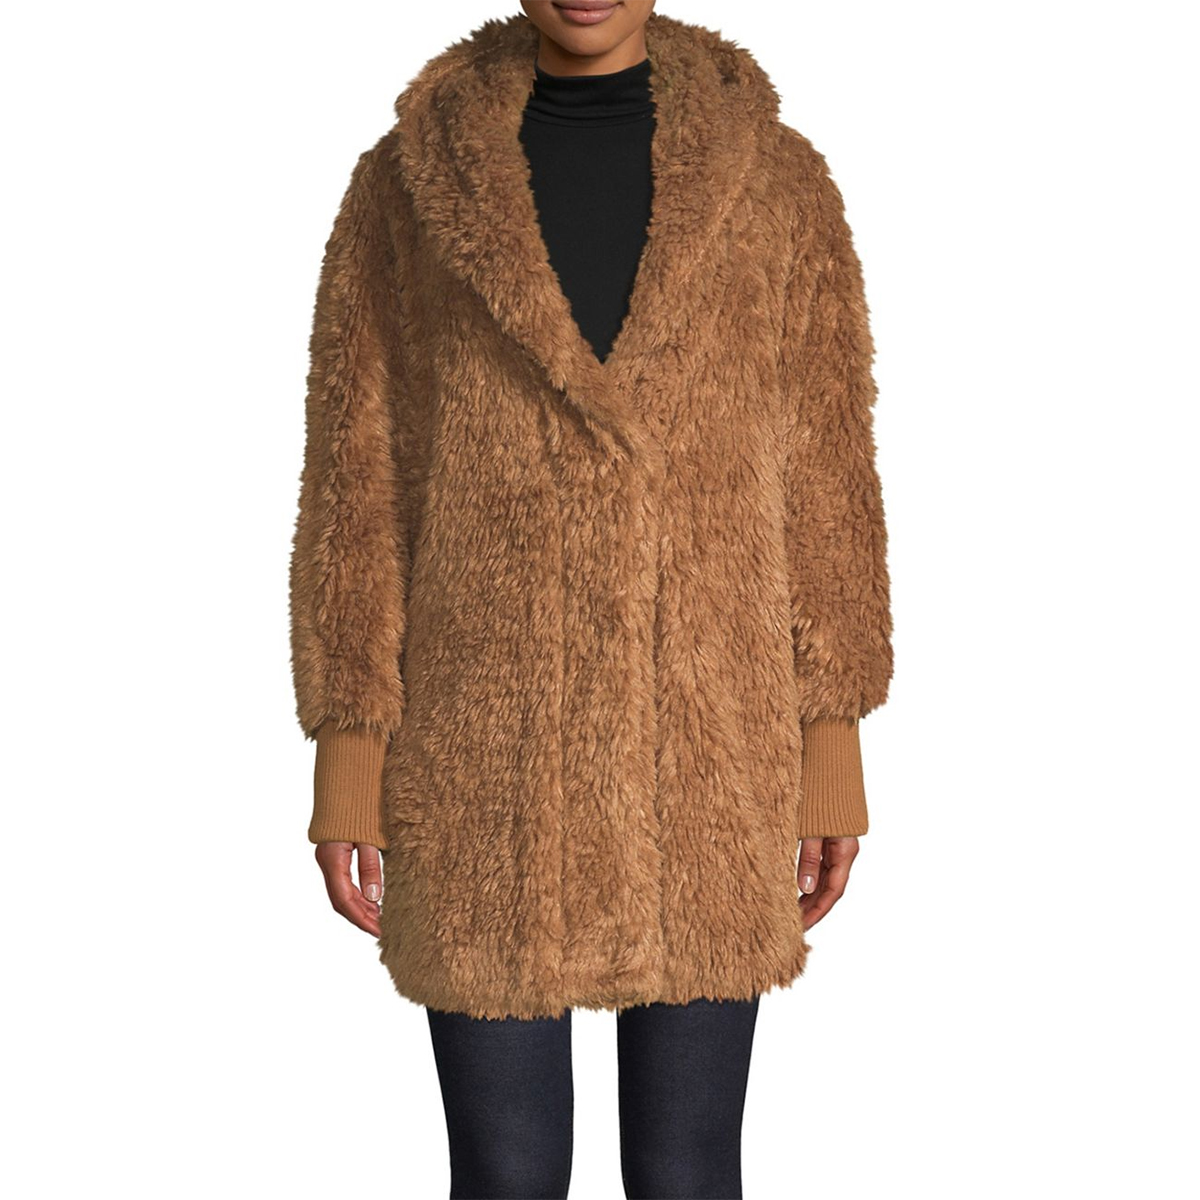 919fb916947 Best Faux Fur Coats and Jackets 2018 | Real Simple